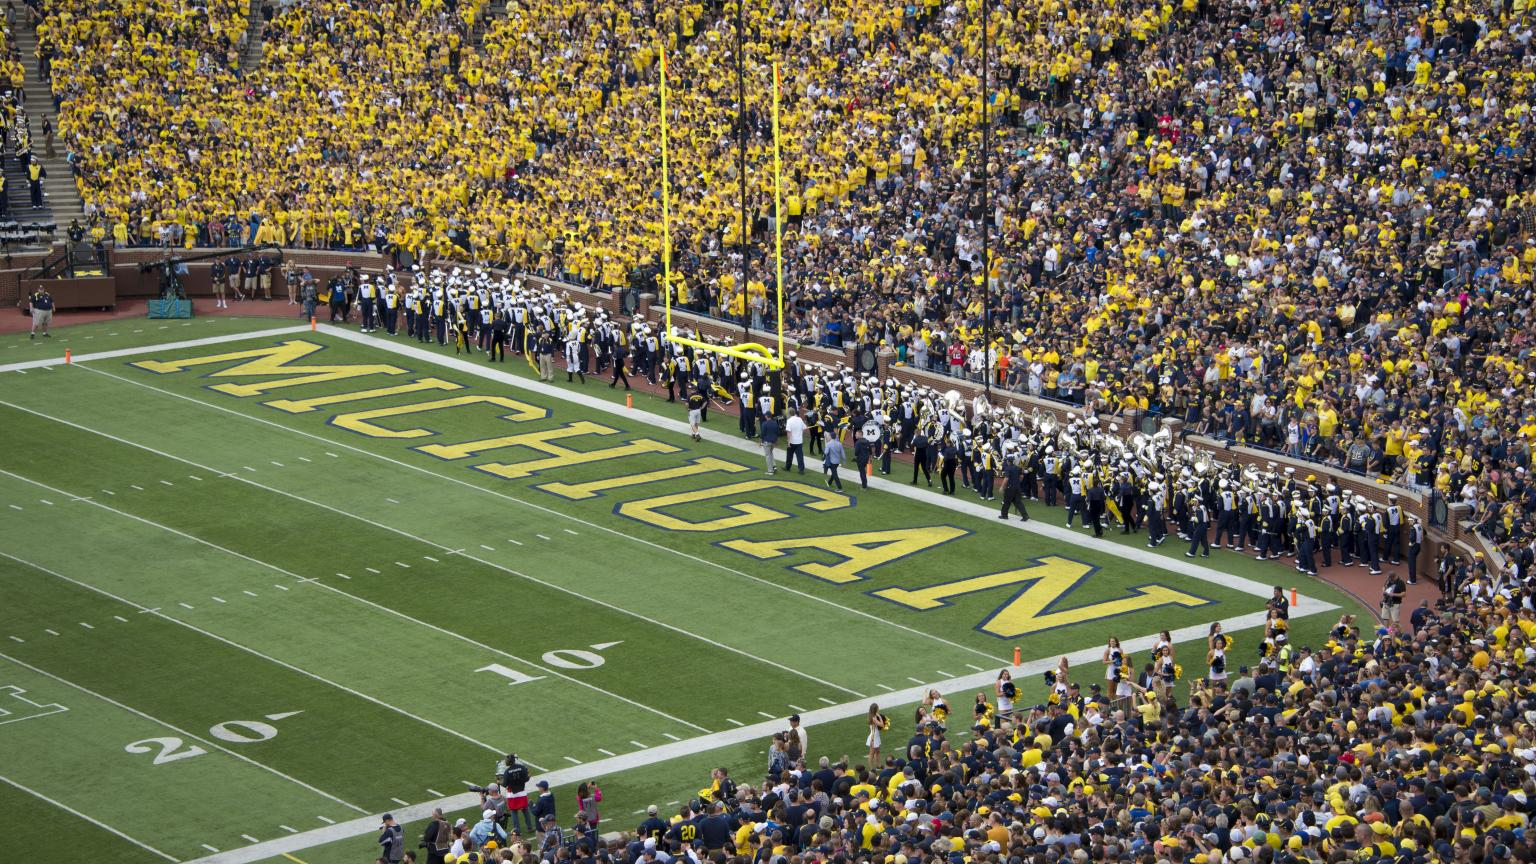 Michigan football stadium end zone during a football game